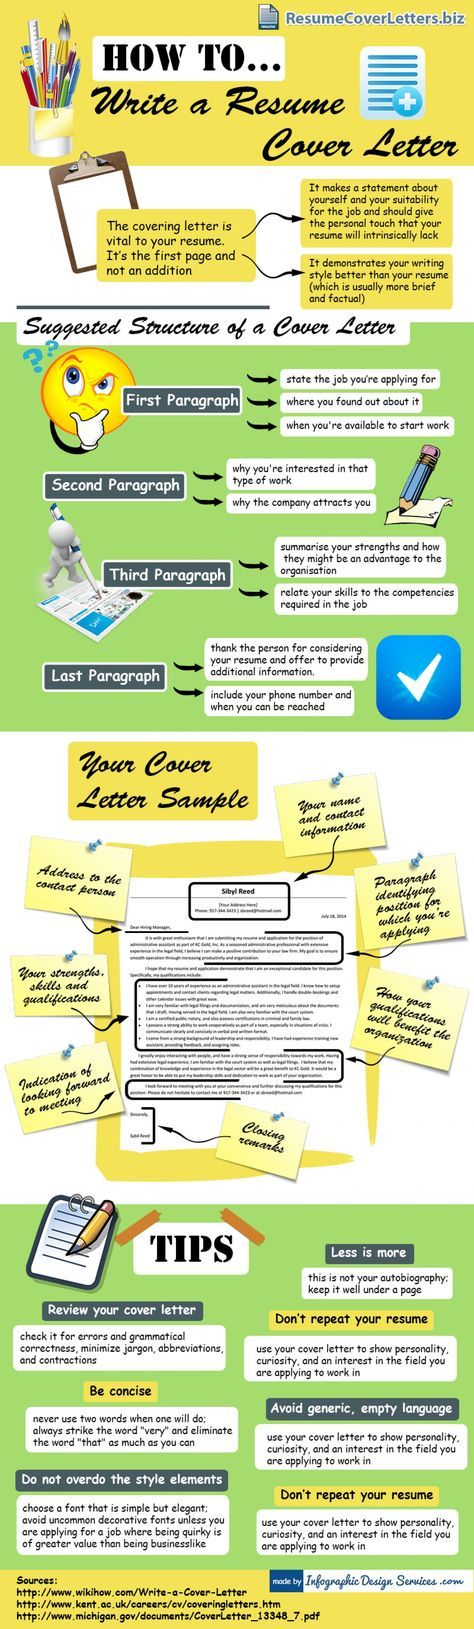 Best 25+ Resume writing tips ideas on Pinterest Career help - what are resumes